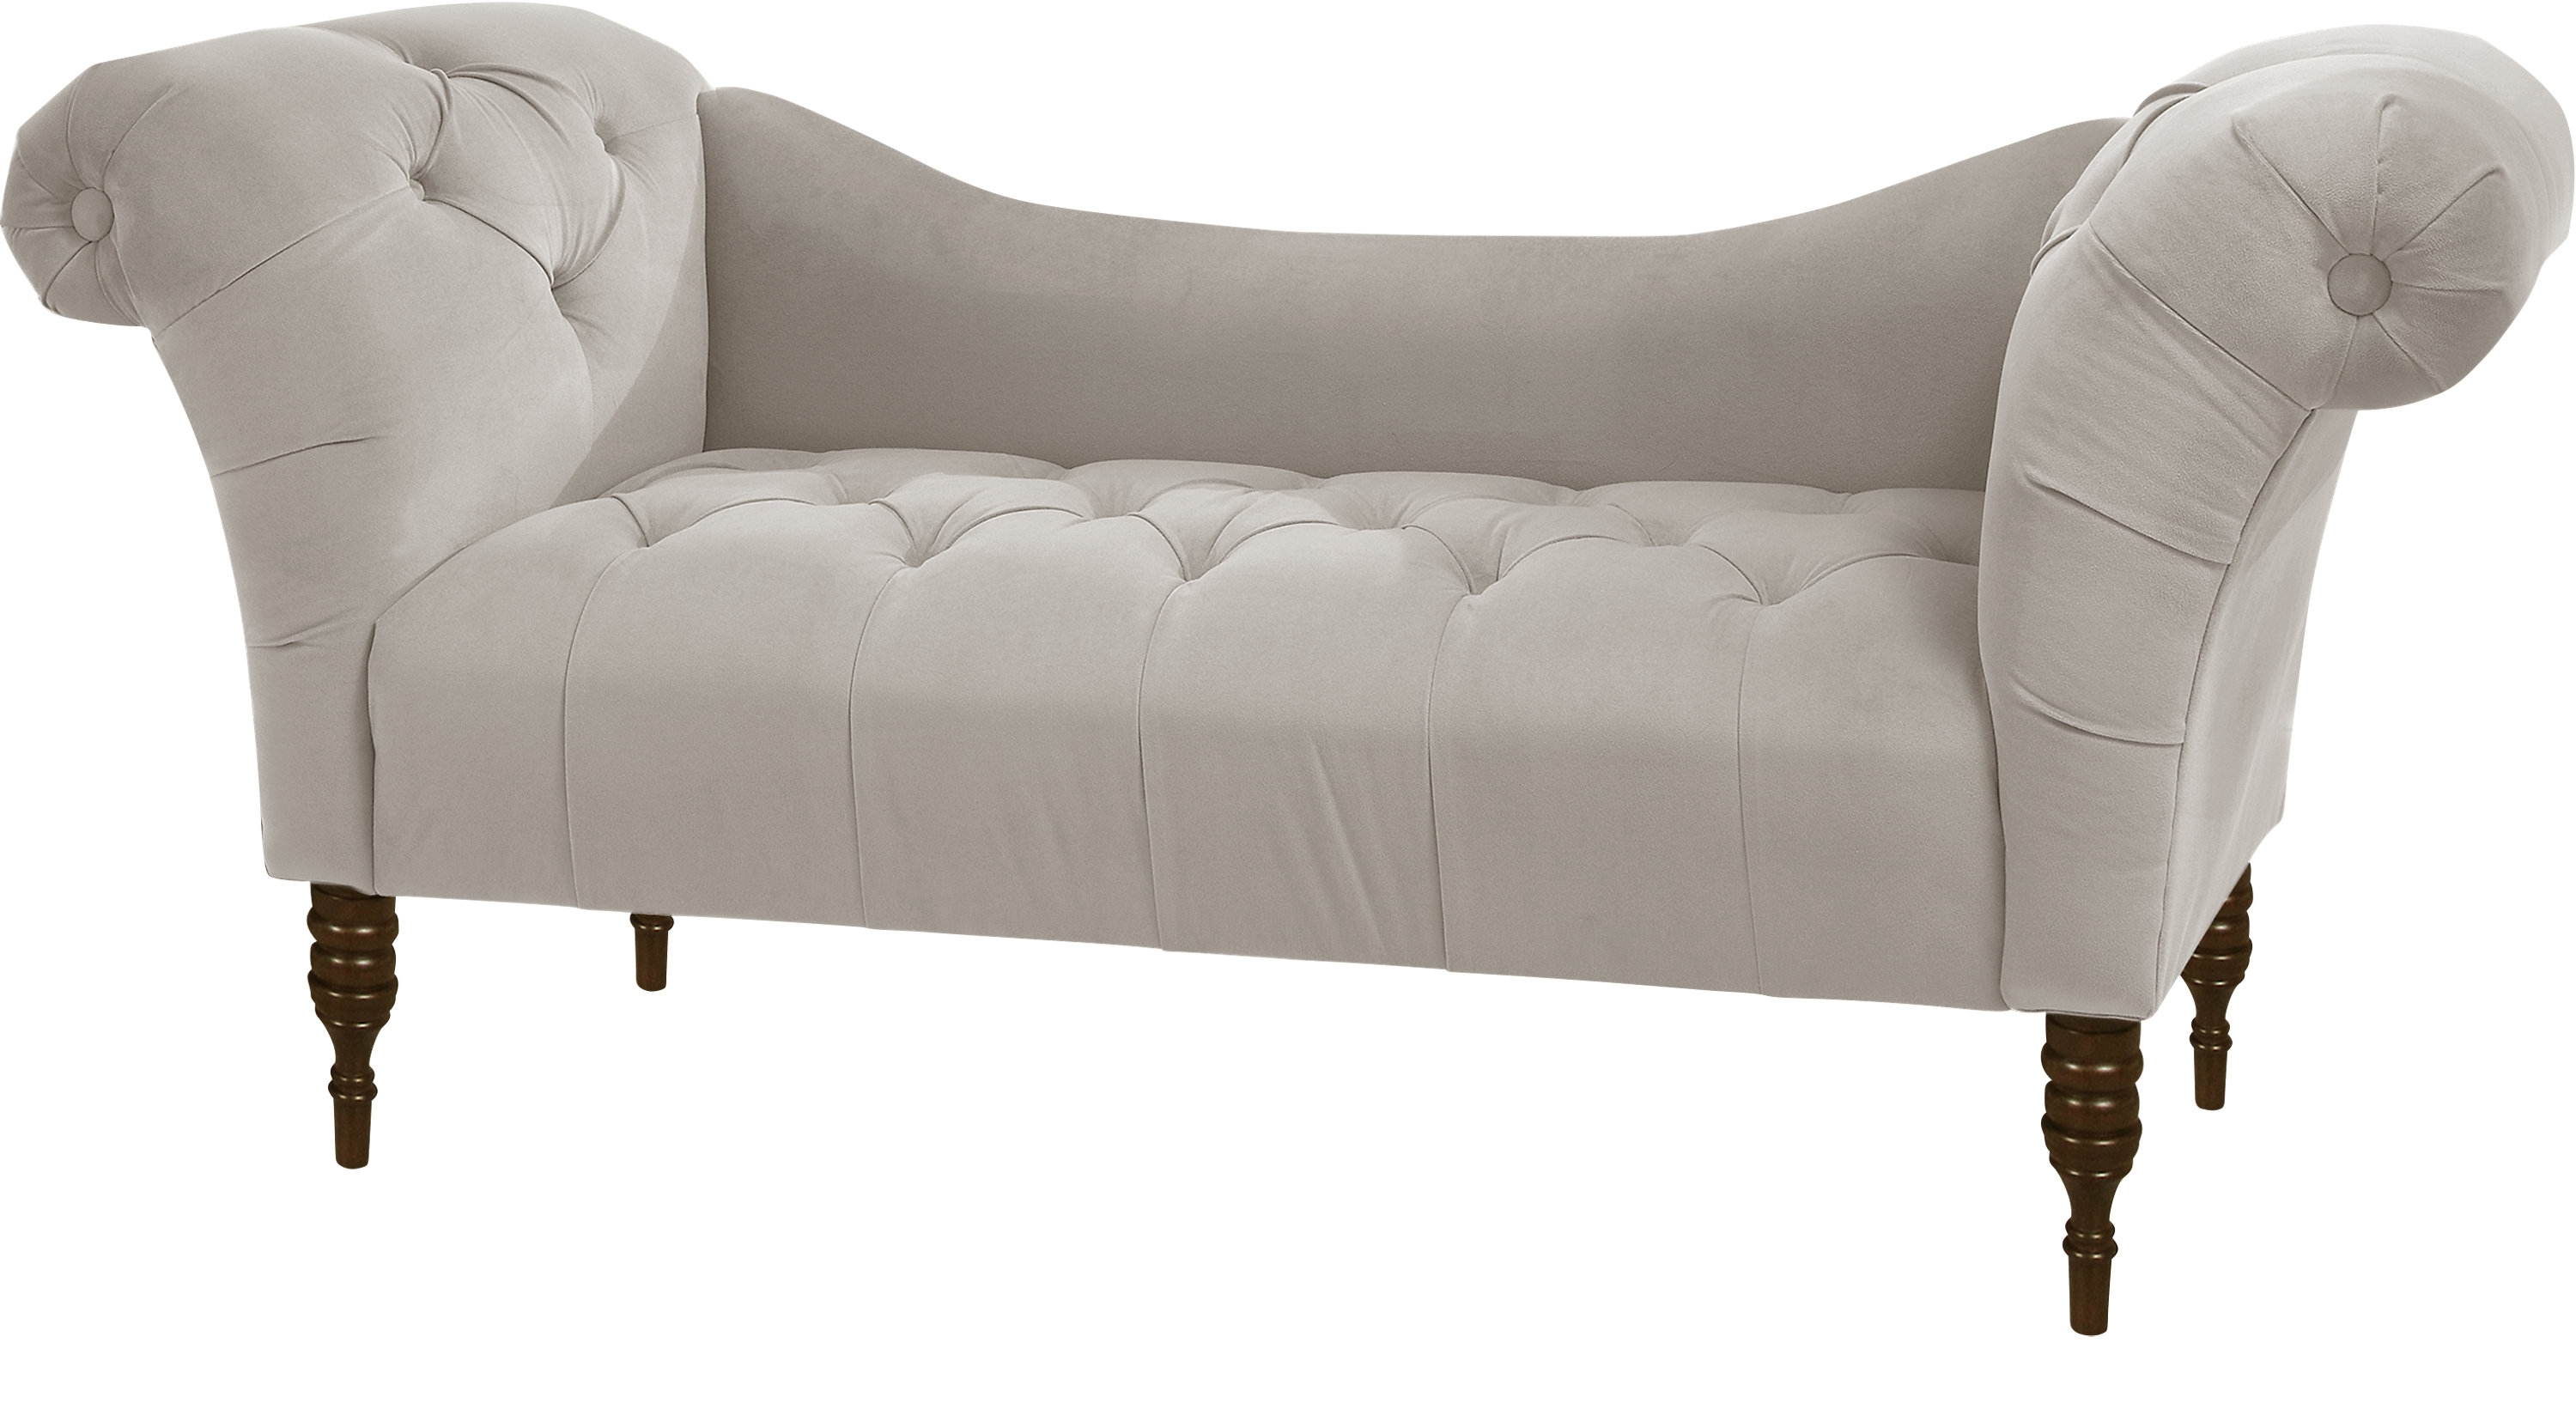 Well Known Whitmere Light Gray Chaise Bench – Transitional With Regard To Chaise Benchs (View 1 of 15)